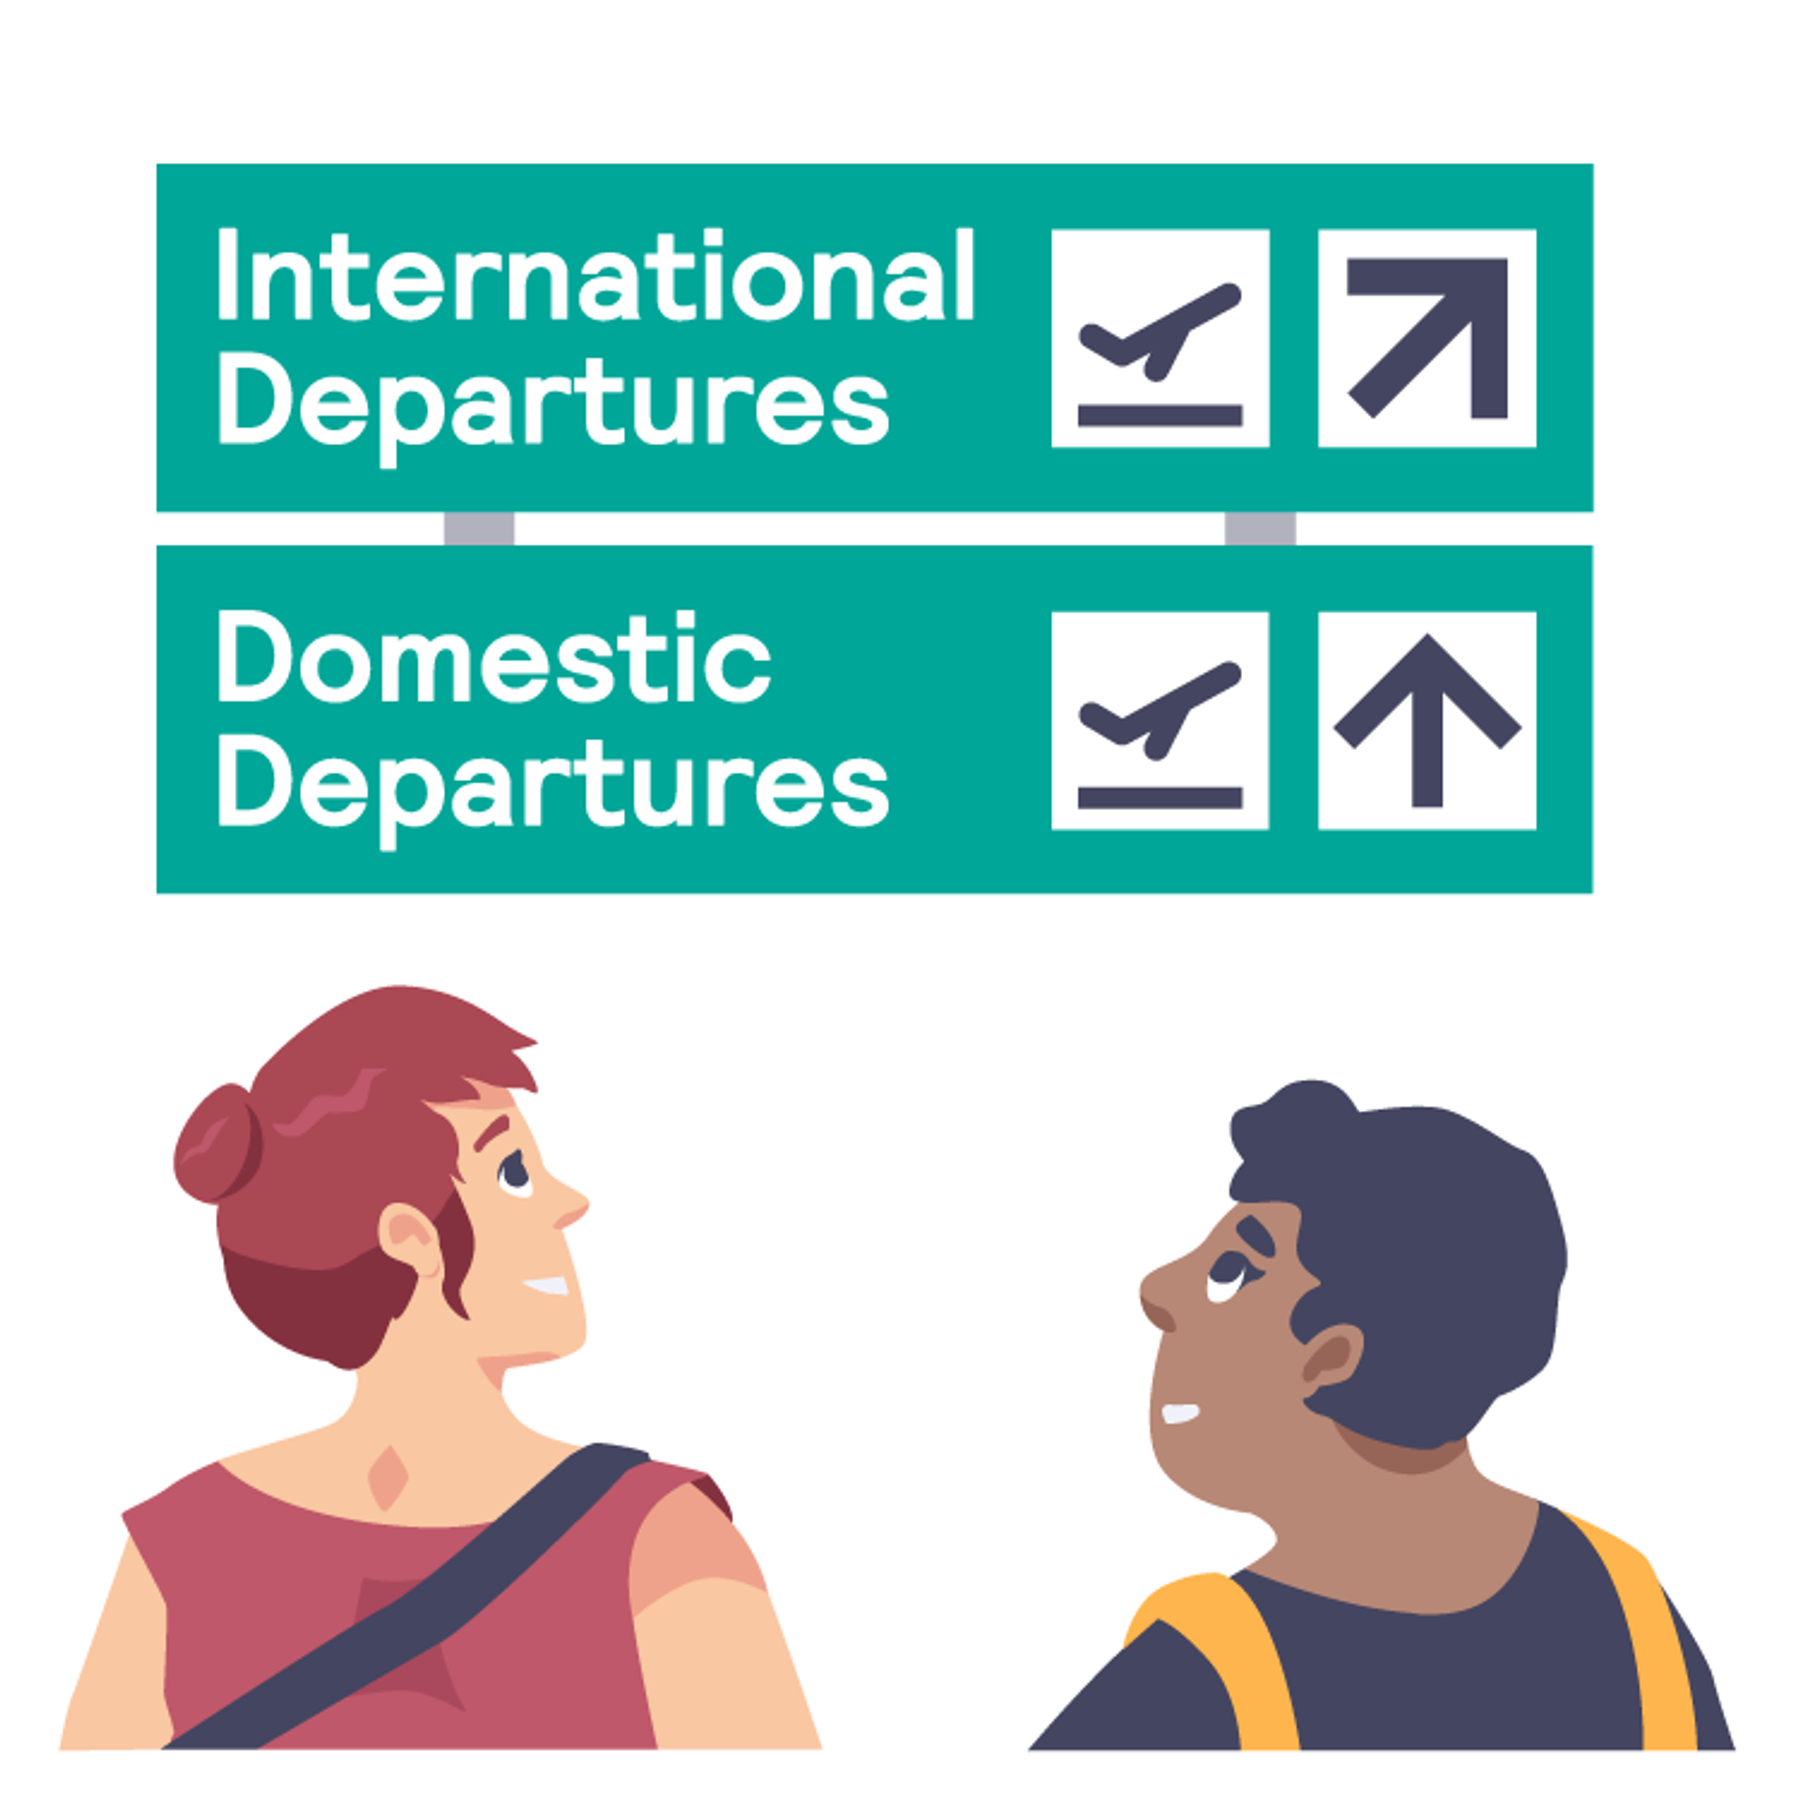 Two smiling travellers look at a sign that points to international departures in one direction and domestic departures in another direction.